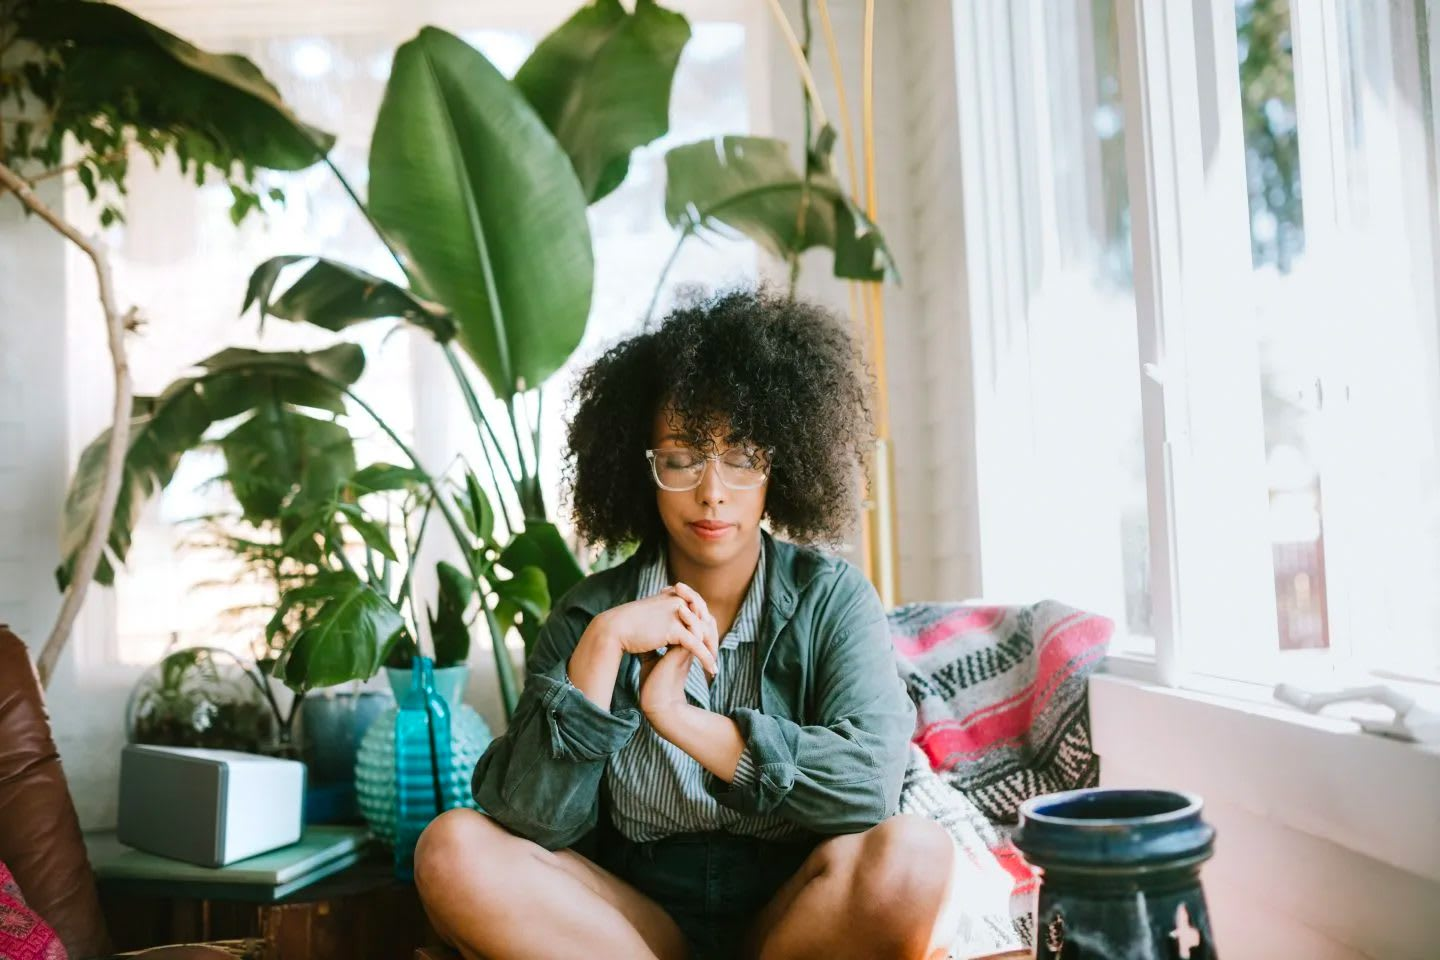 Woman with afro sitting cross-legged with eyes closed daydreaming, calm, peaceful, mindfulness